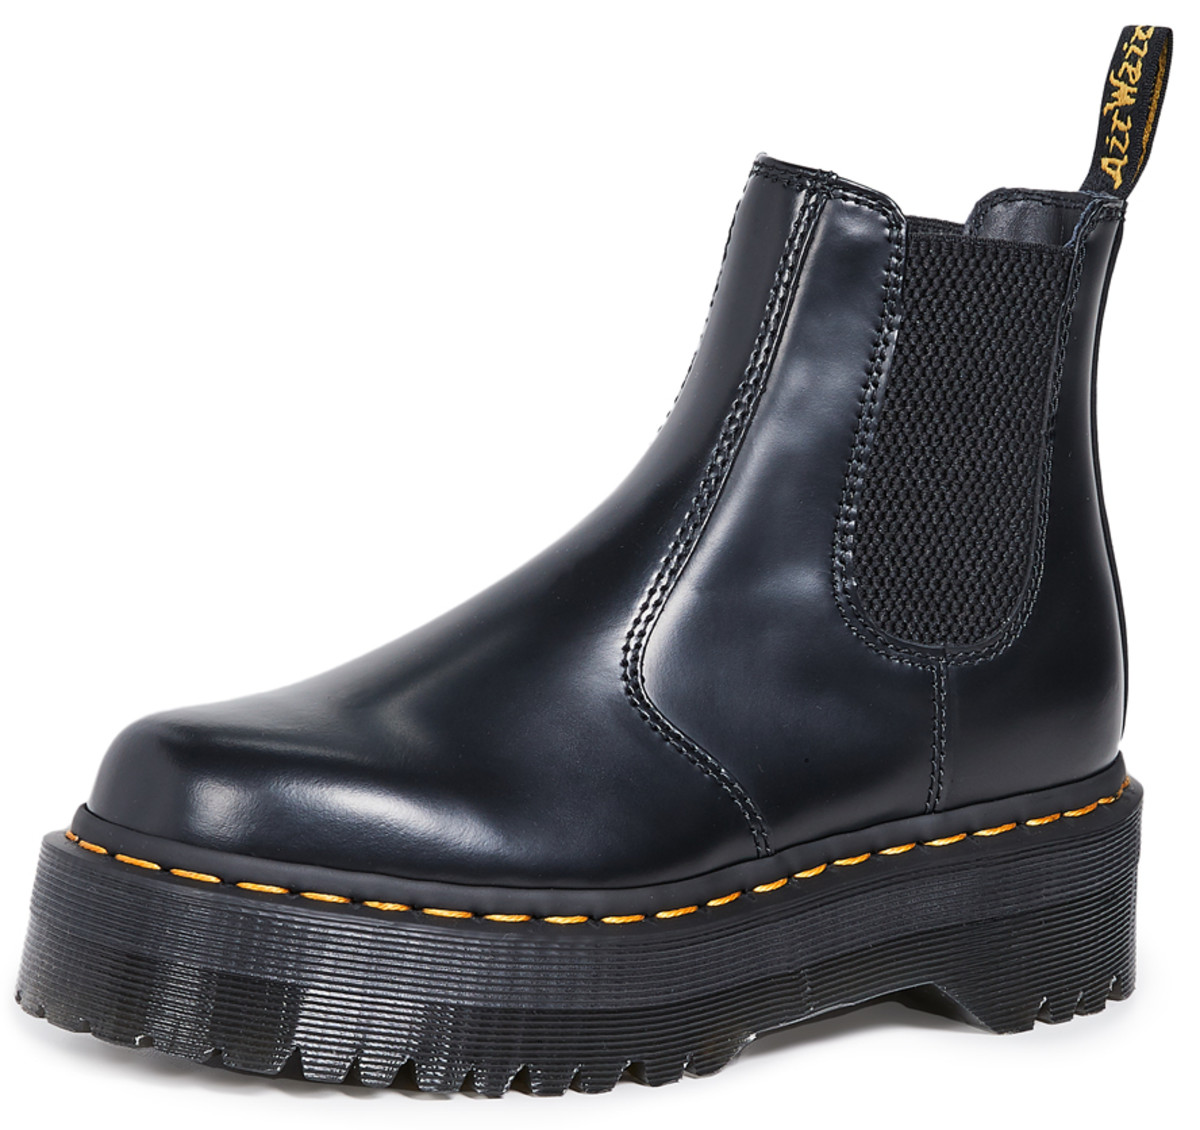 Dr. Martens 2976 Quad Chelsea Boots, $175, available here.